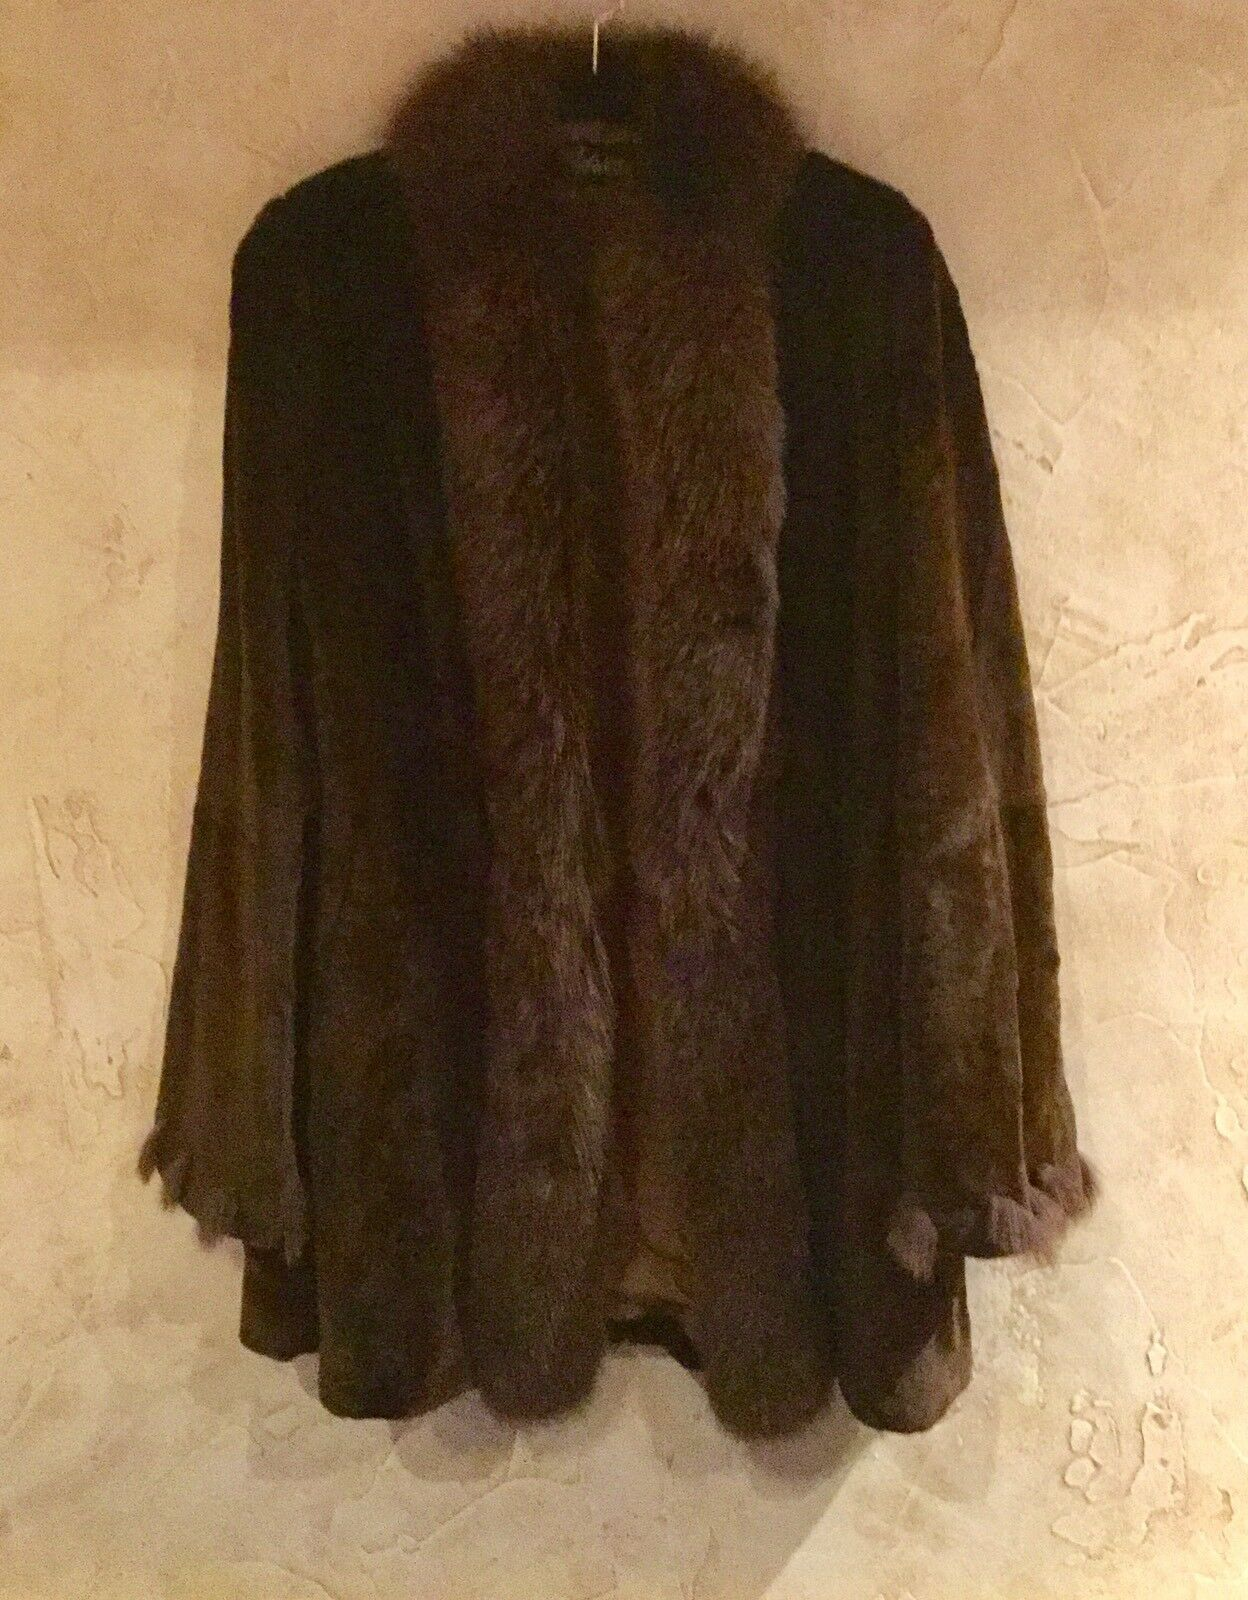 CEDRICS LUXE FUR COLLECTION SHEARED BEAVER & FOX TUXEDO COAT RET  2895 FABULOUS